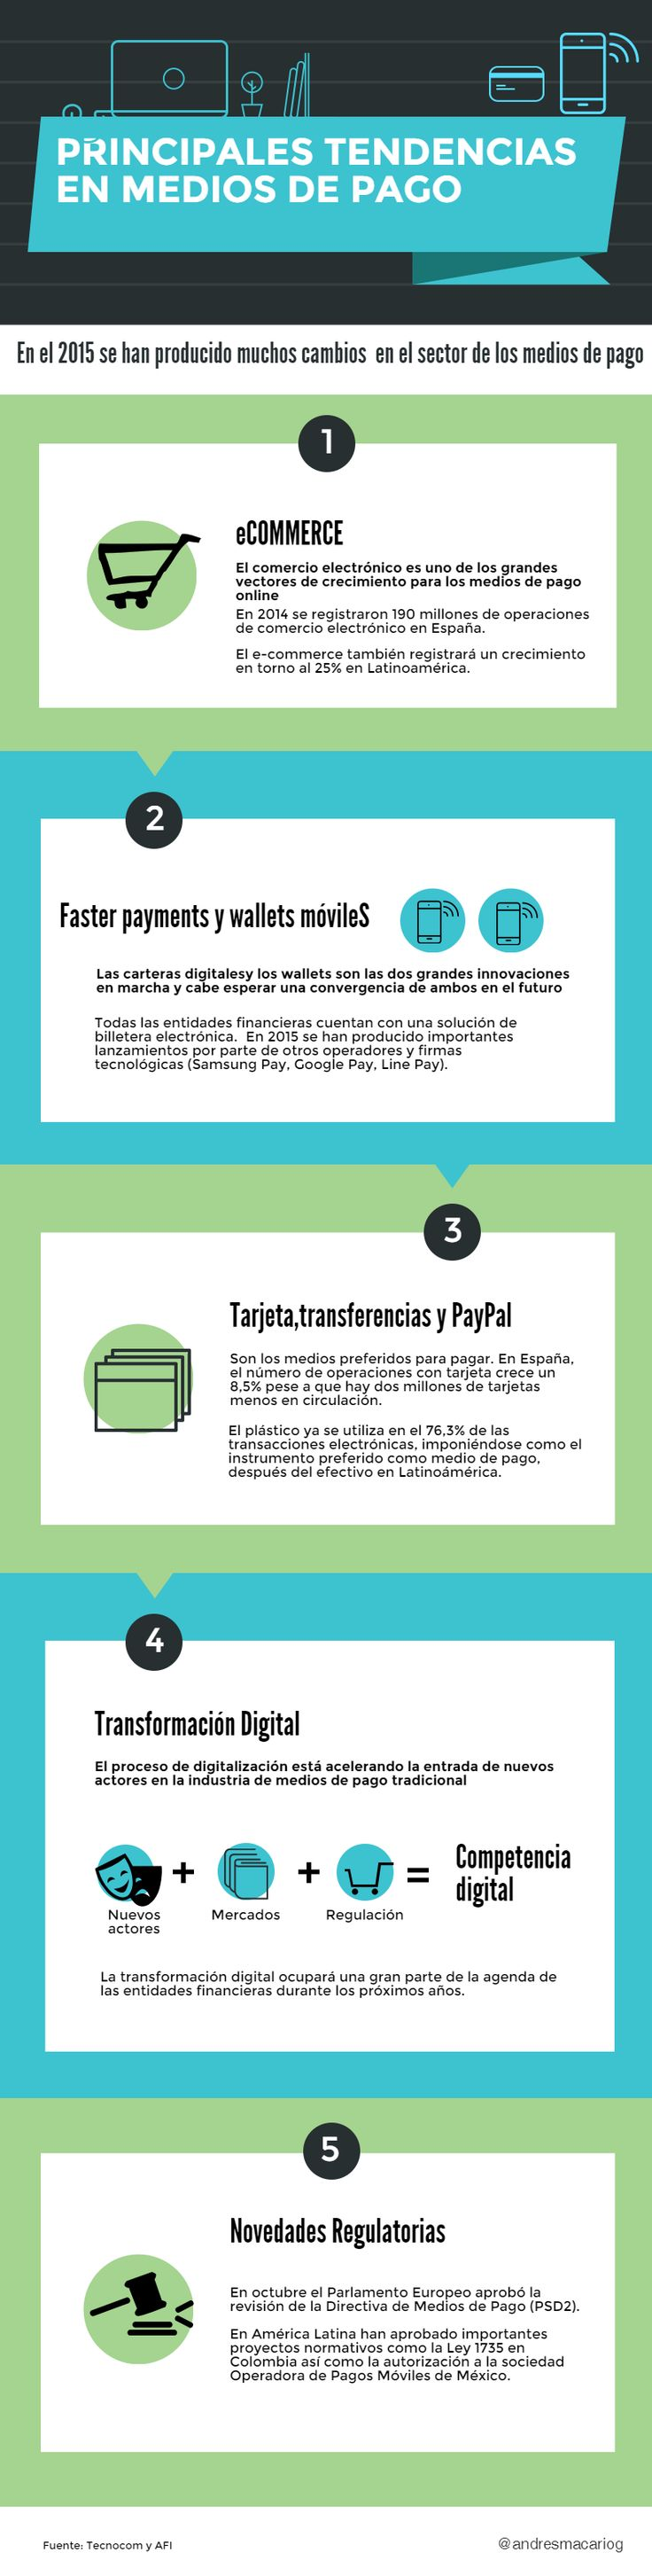 Advertising-Infographics-Principales-tendencias-en-Medios-de-Pago-infografia-infographic Advertising Infographics : Principales tendencias en Medios de Pago